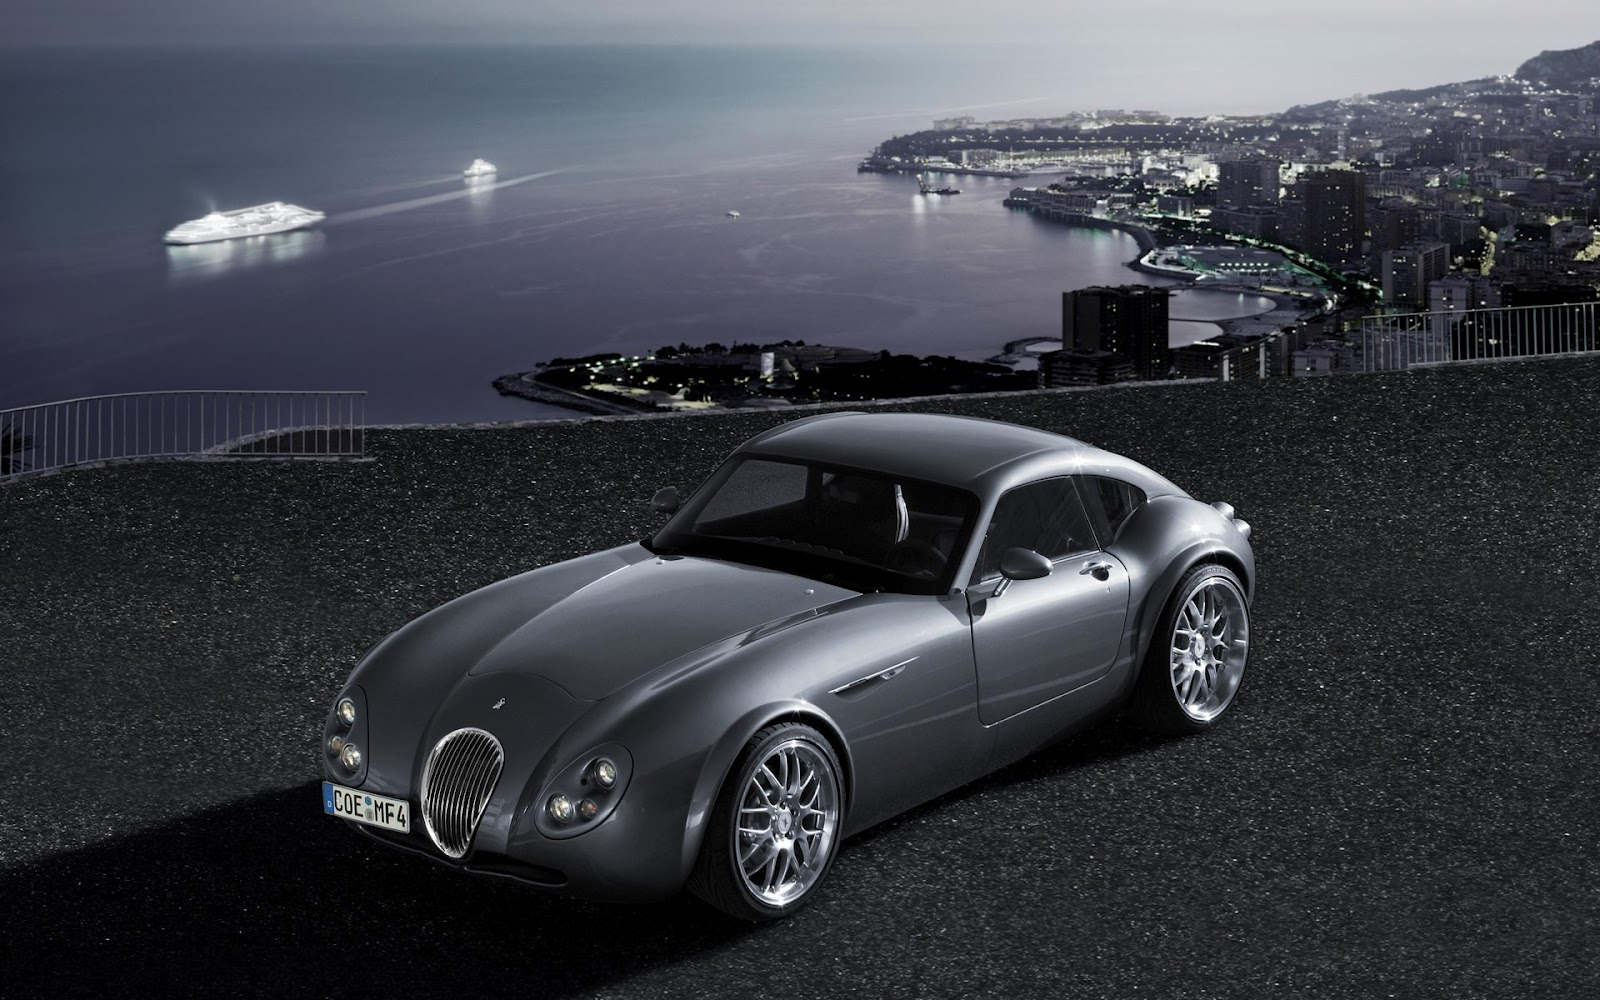 wallpapers of beautiful cars wiesmann gt. Black Bedroom Furniture Sets. Home Design Ideas